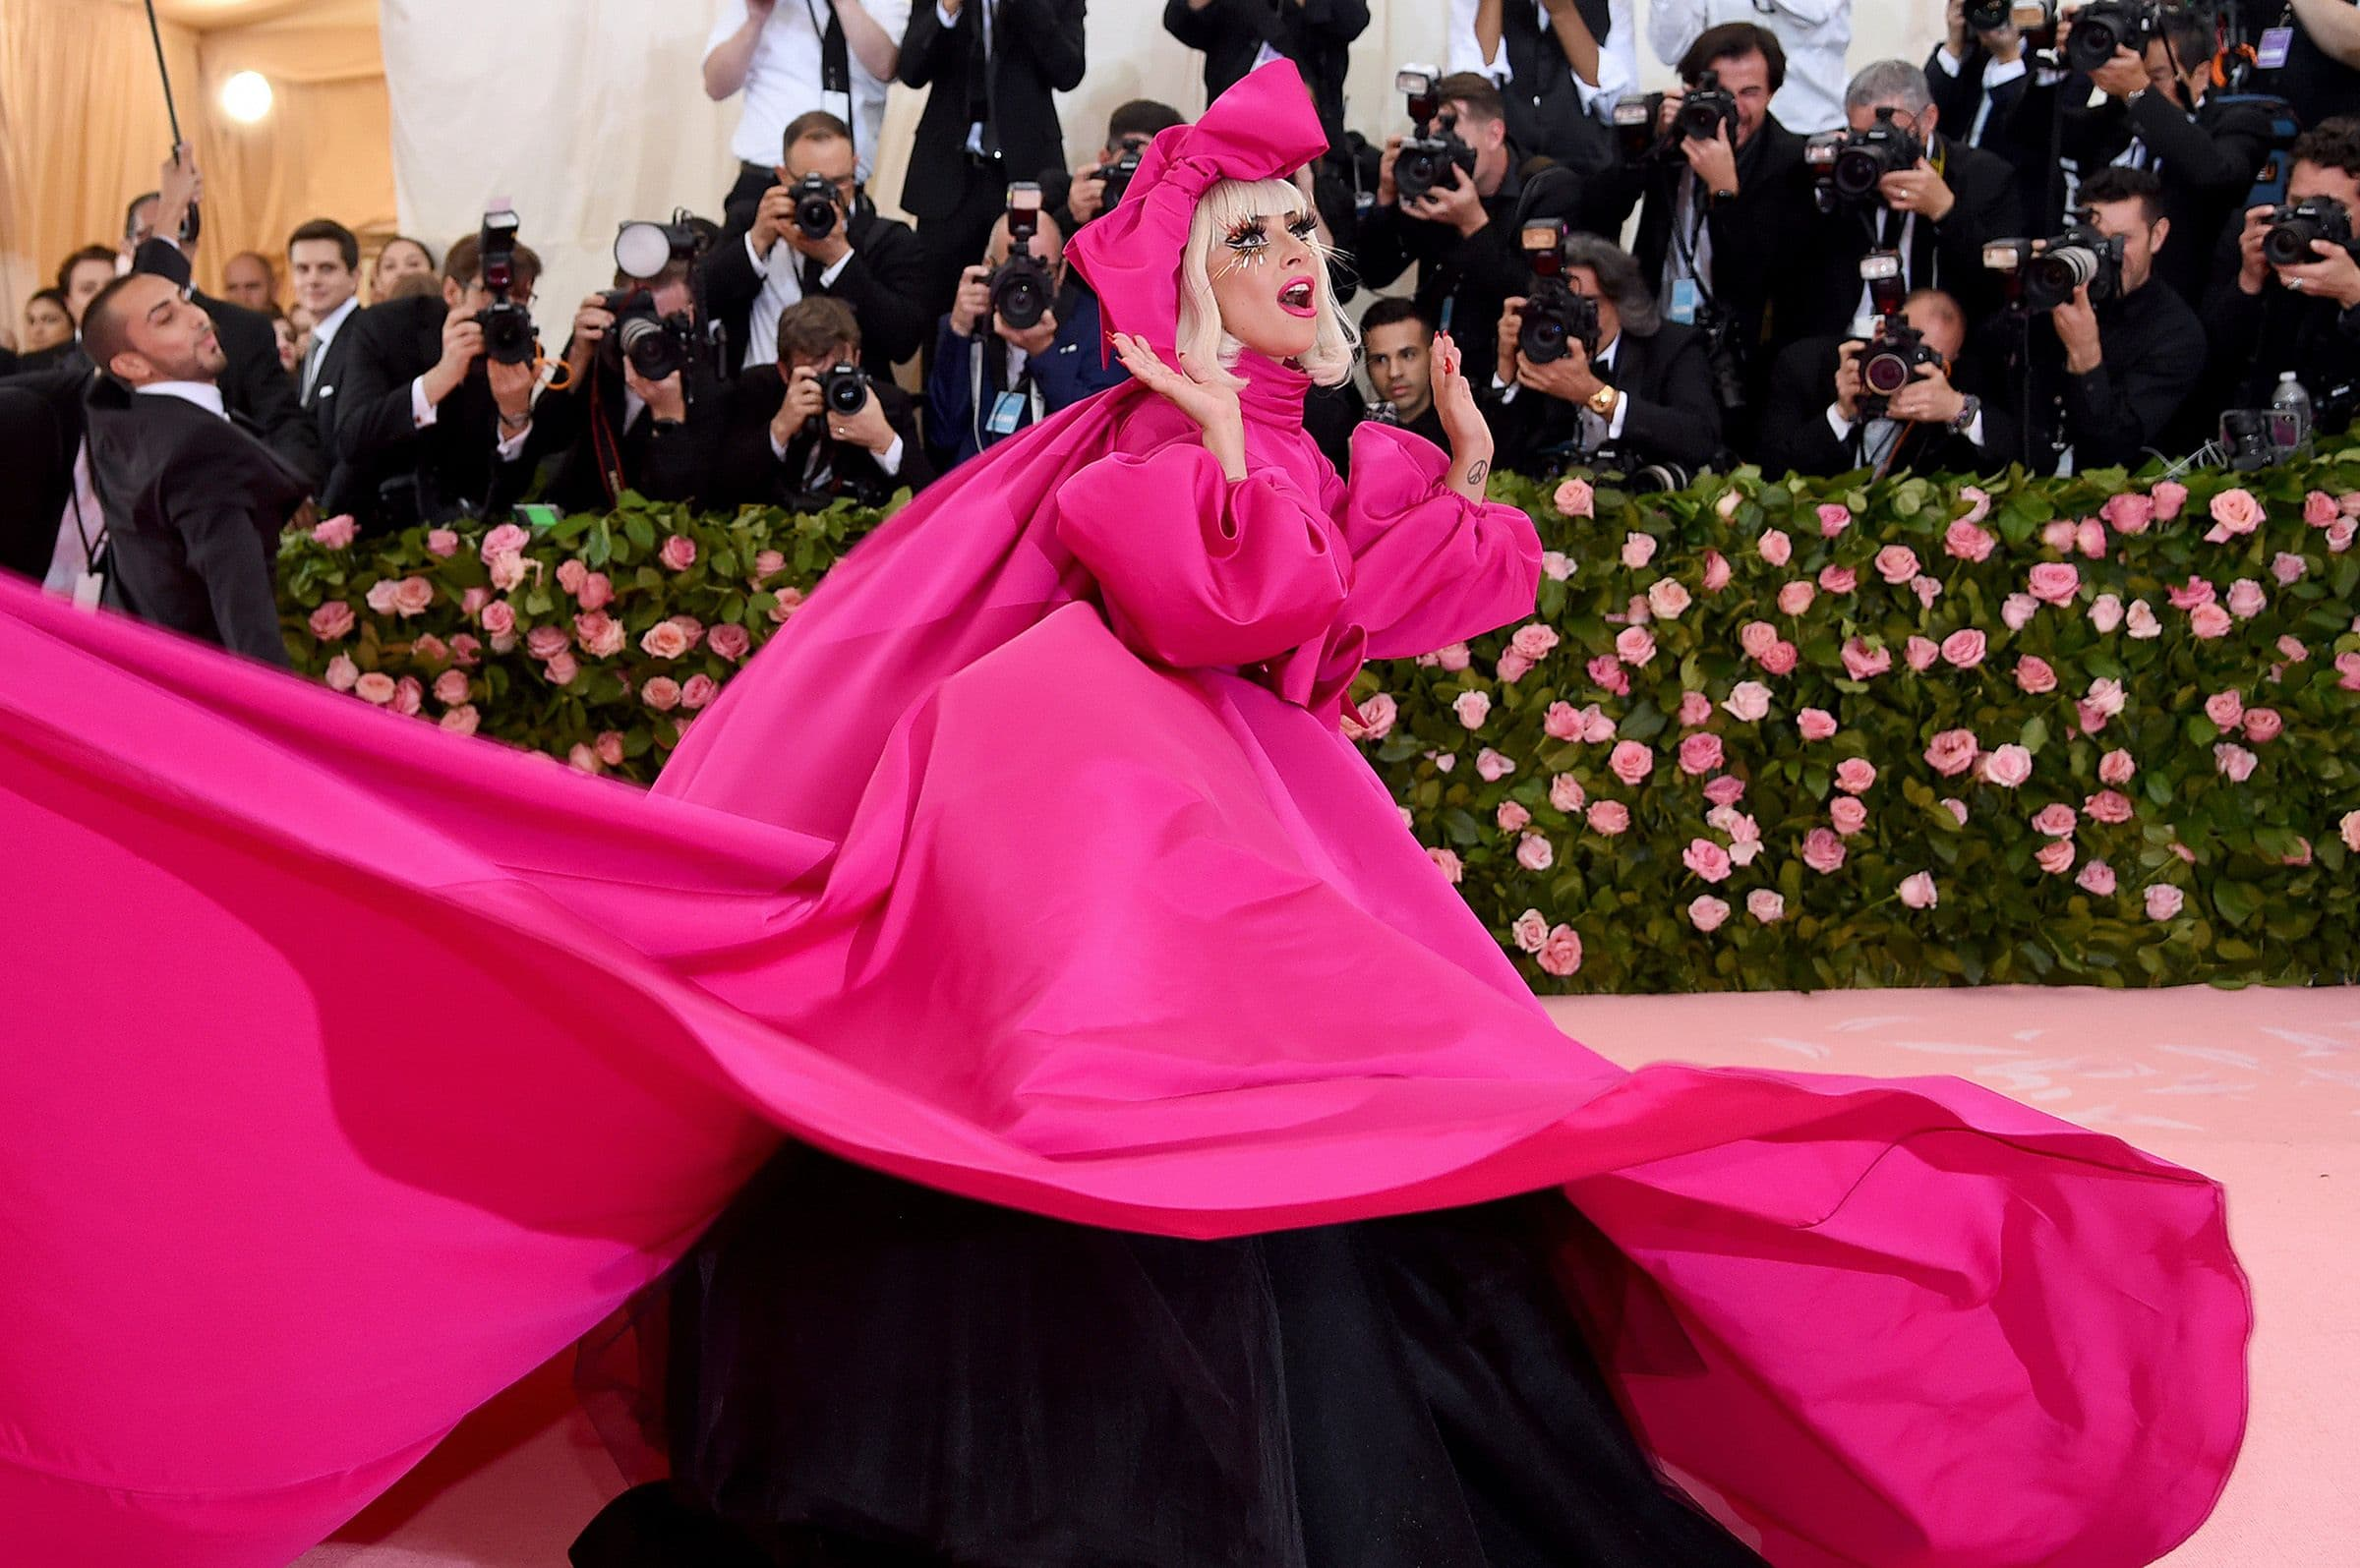 The most extravagant, theatrical, and campy looks from the Met Gala